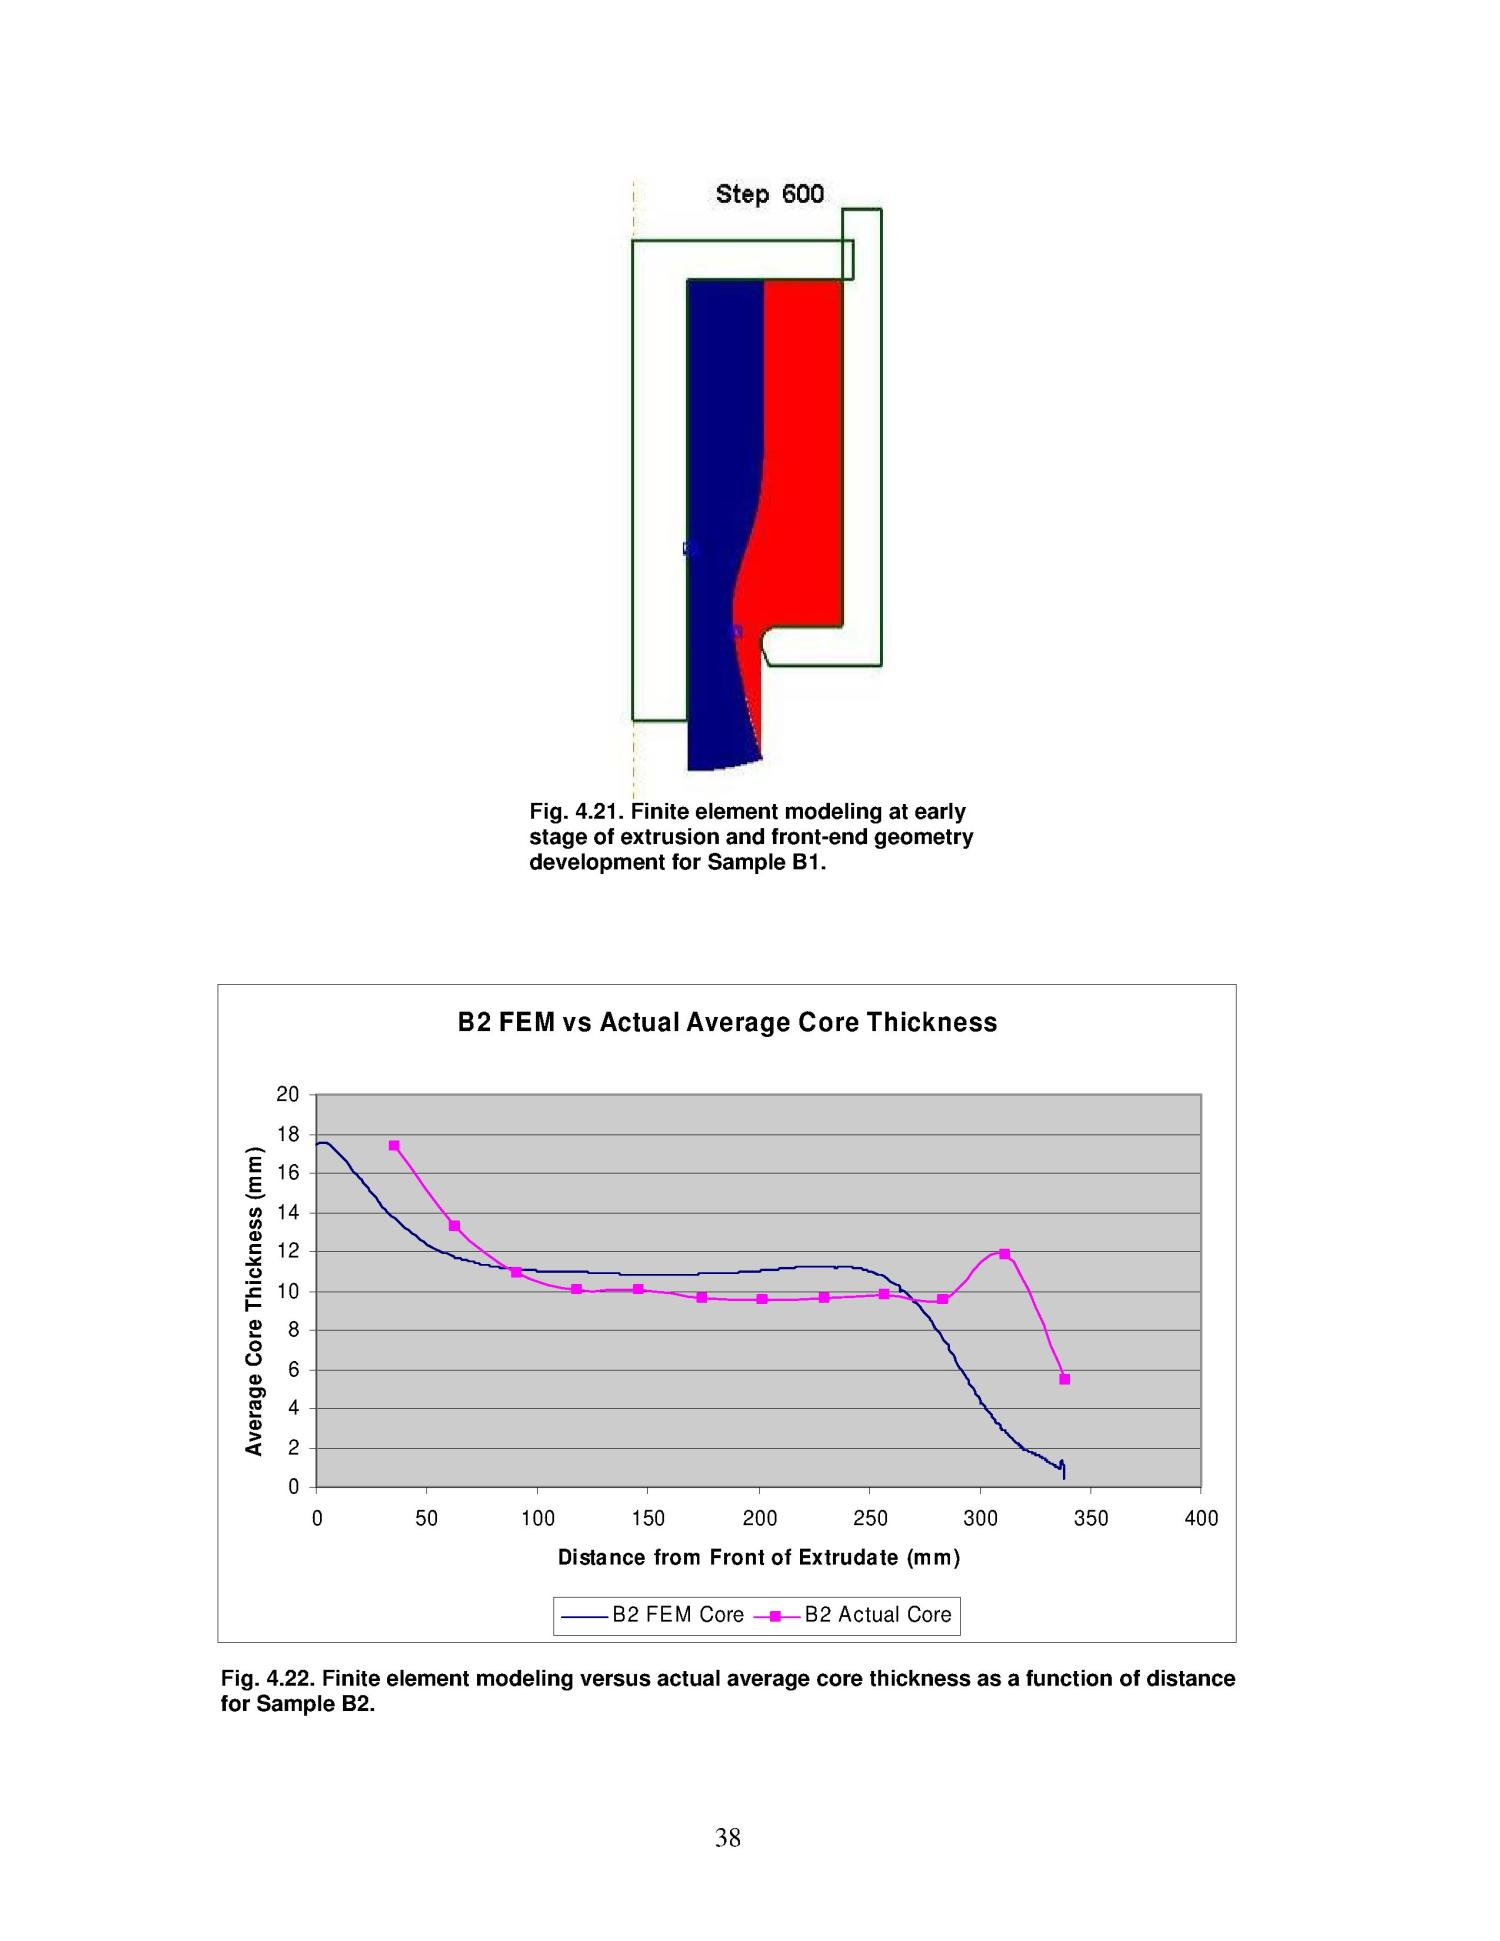 Physical and Numerical Analysis of Extrusion Process for Production of Bimetallic Tubes                                                                                                      [Sequence #]: 54 of 108